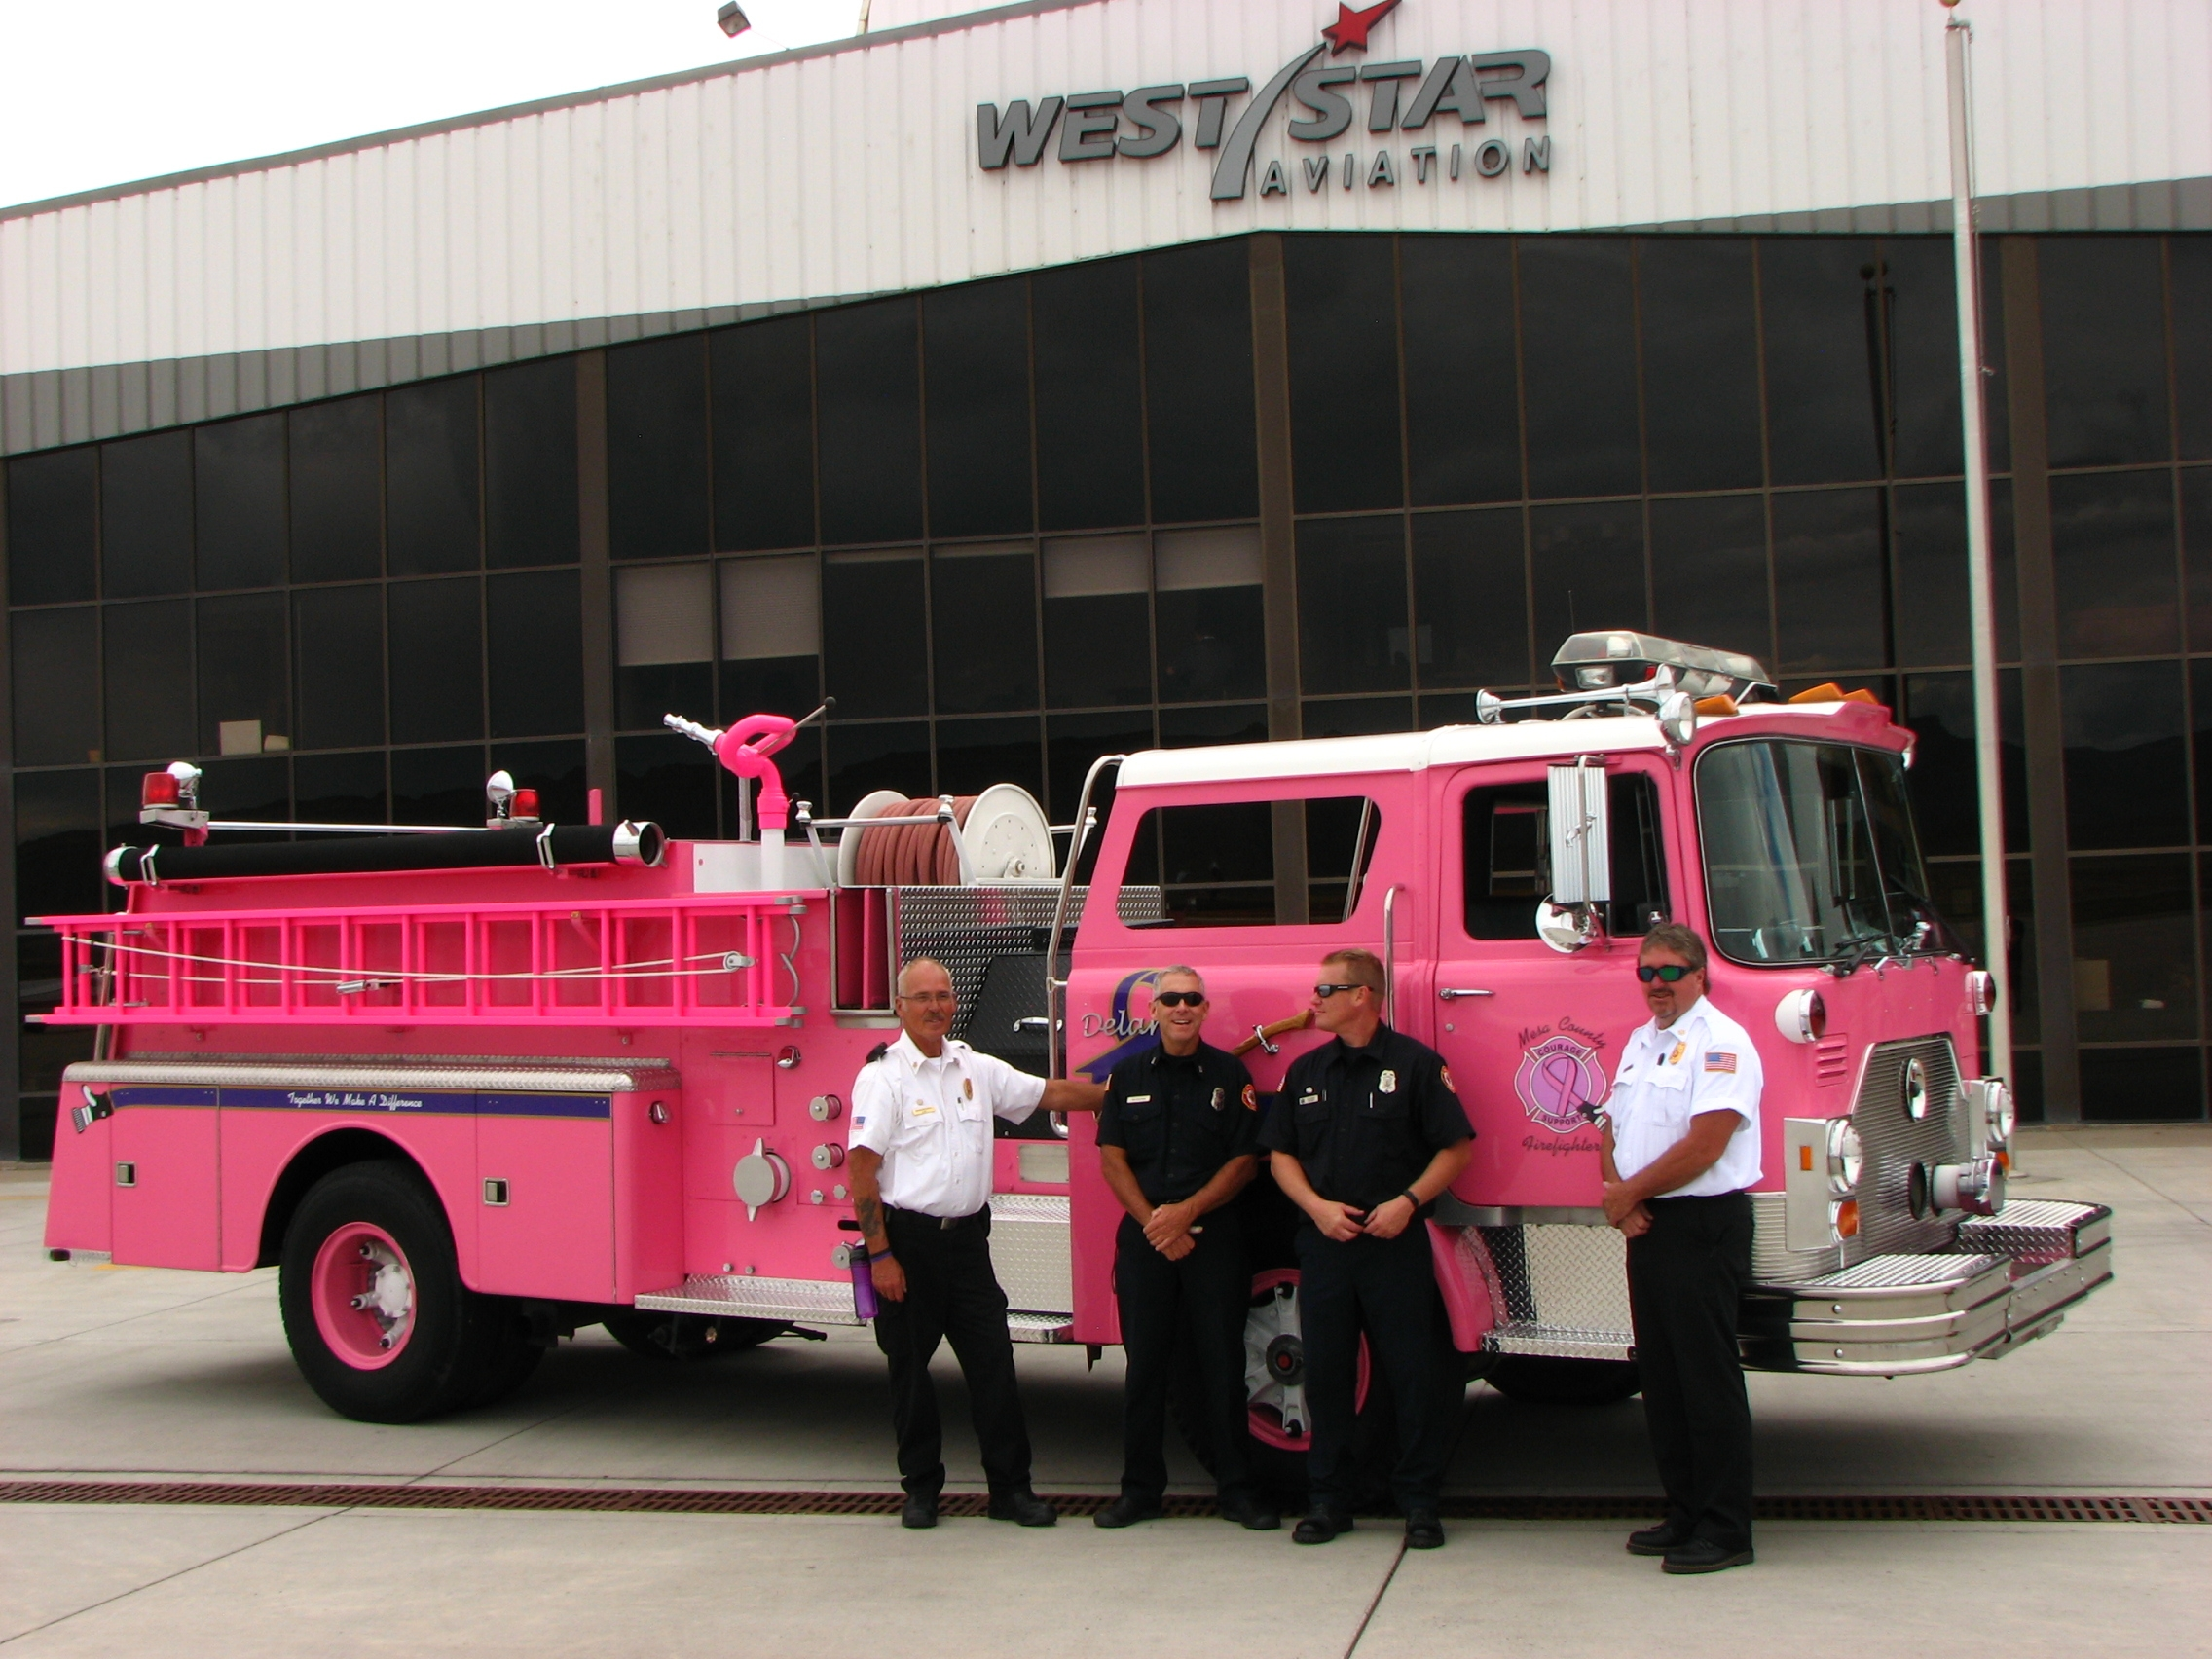 Breast Cancer Awareness Custom Paint Job Delivery West Star Aviation Truck Photos